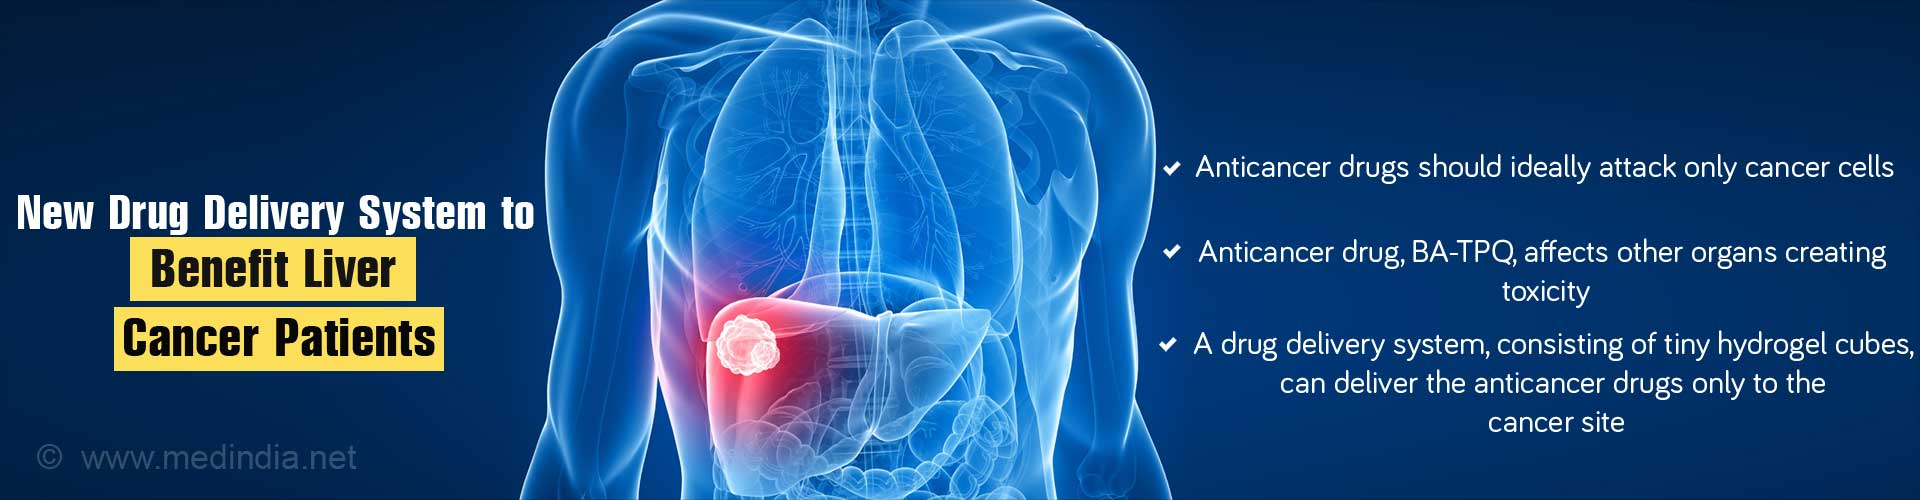 Fresh Lease of Life for Liver Cancer Patients With New Drug Delivery System